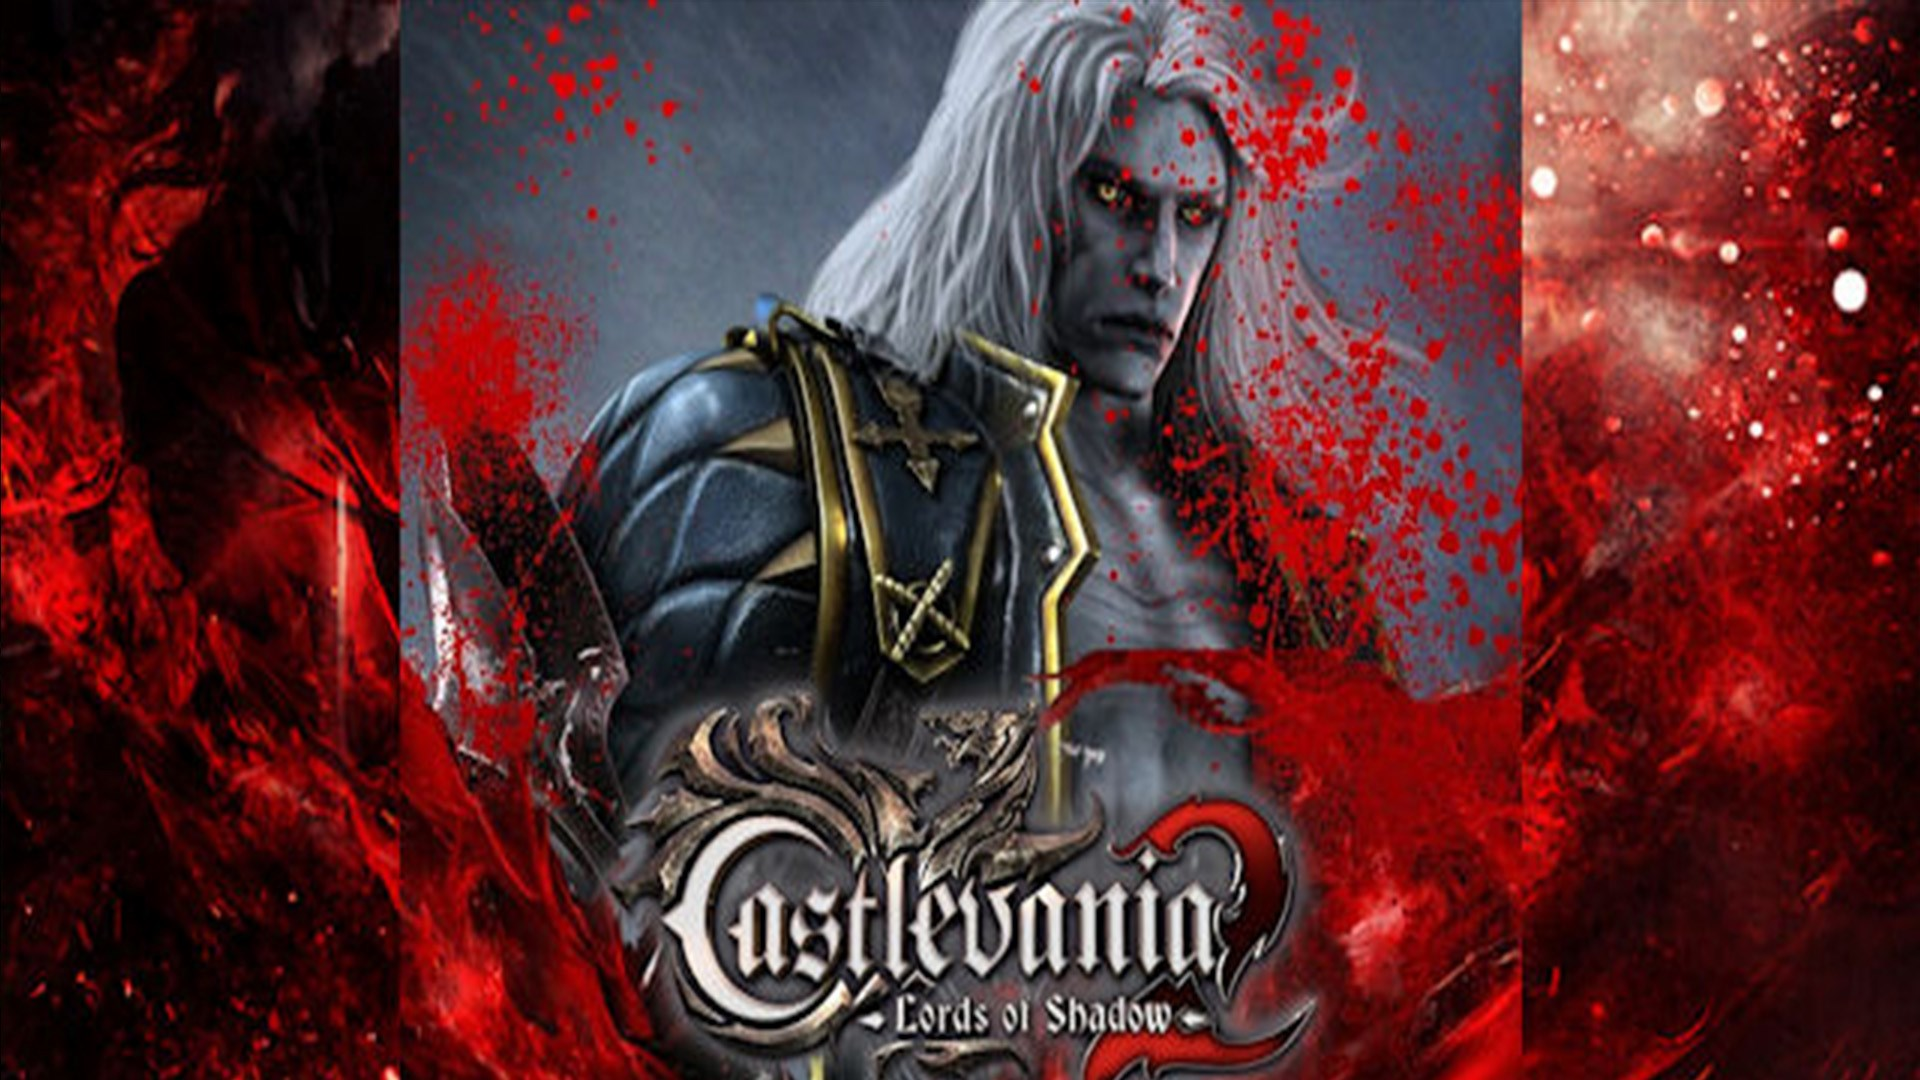 castlevania-lords-of-shadow-pack-1080p-hd-by-Lark-Stevenson-wallpaper-wpc5803314